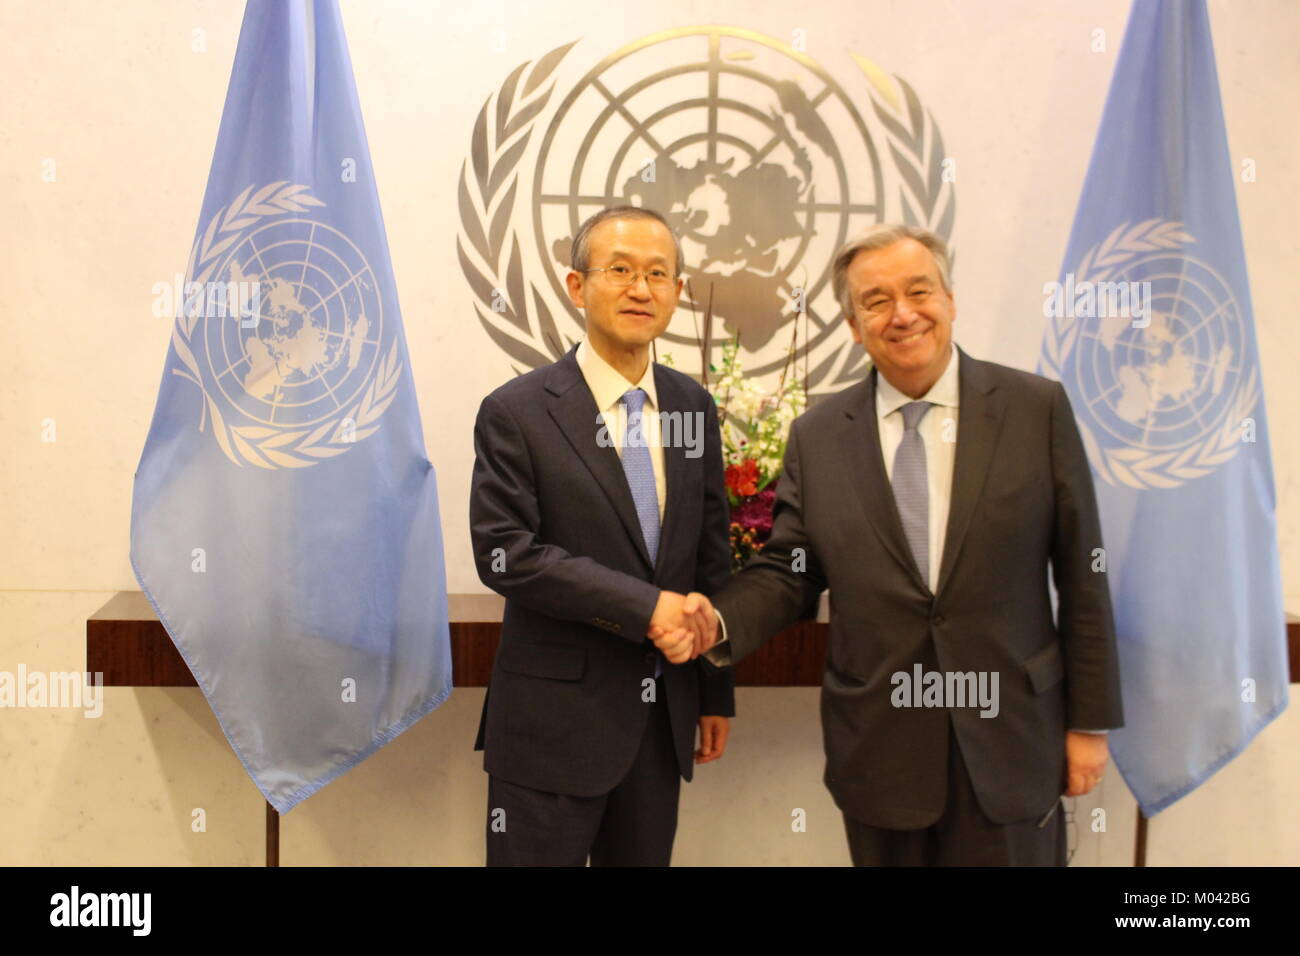 UN, New York, USA. 18th Jan, 2018. UN Sec-Gen Antonio Guterres met Lim Sung-nam, First Vice Foreign Minister, Republic Stock Photo